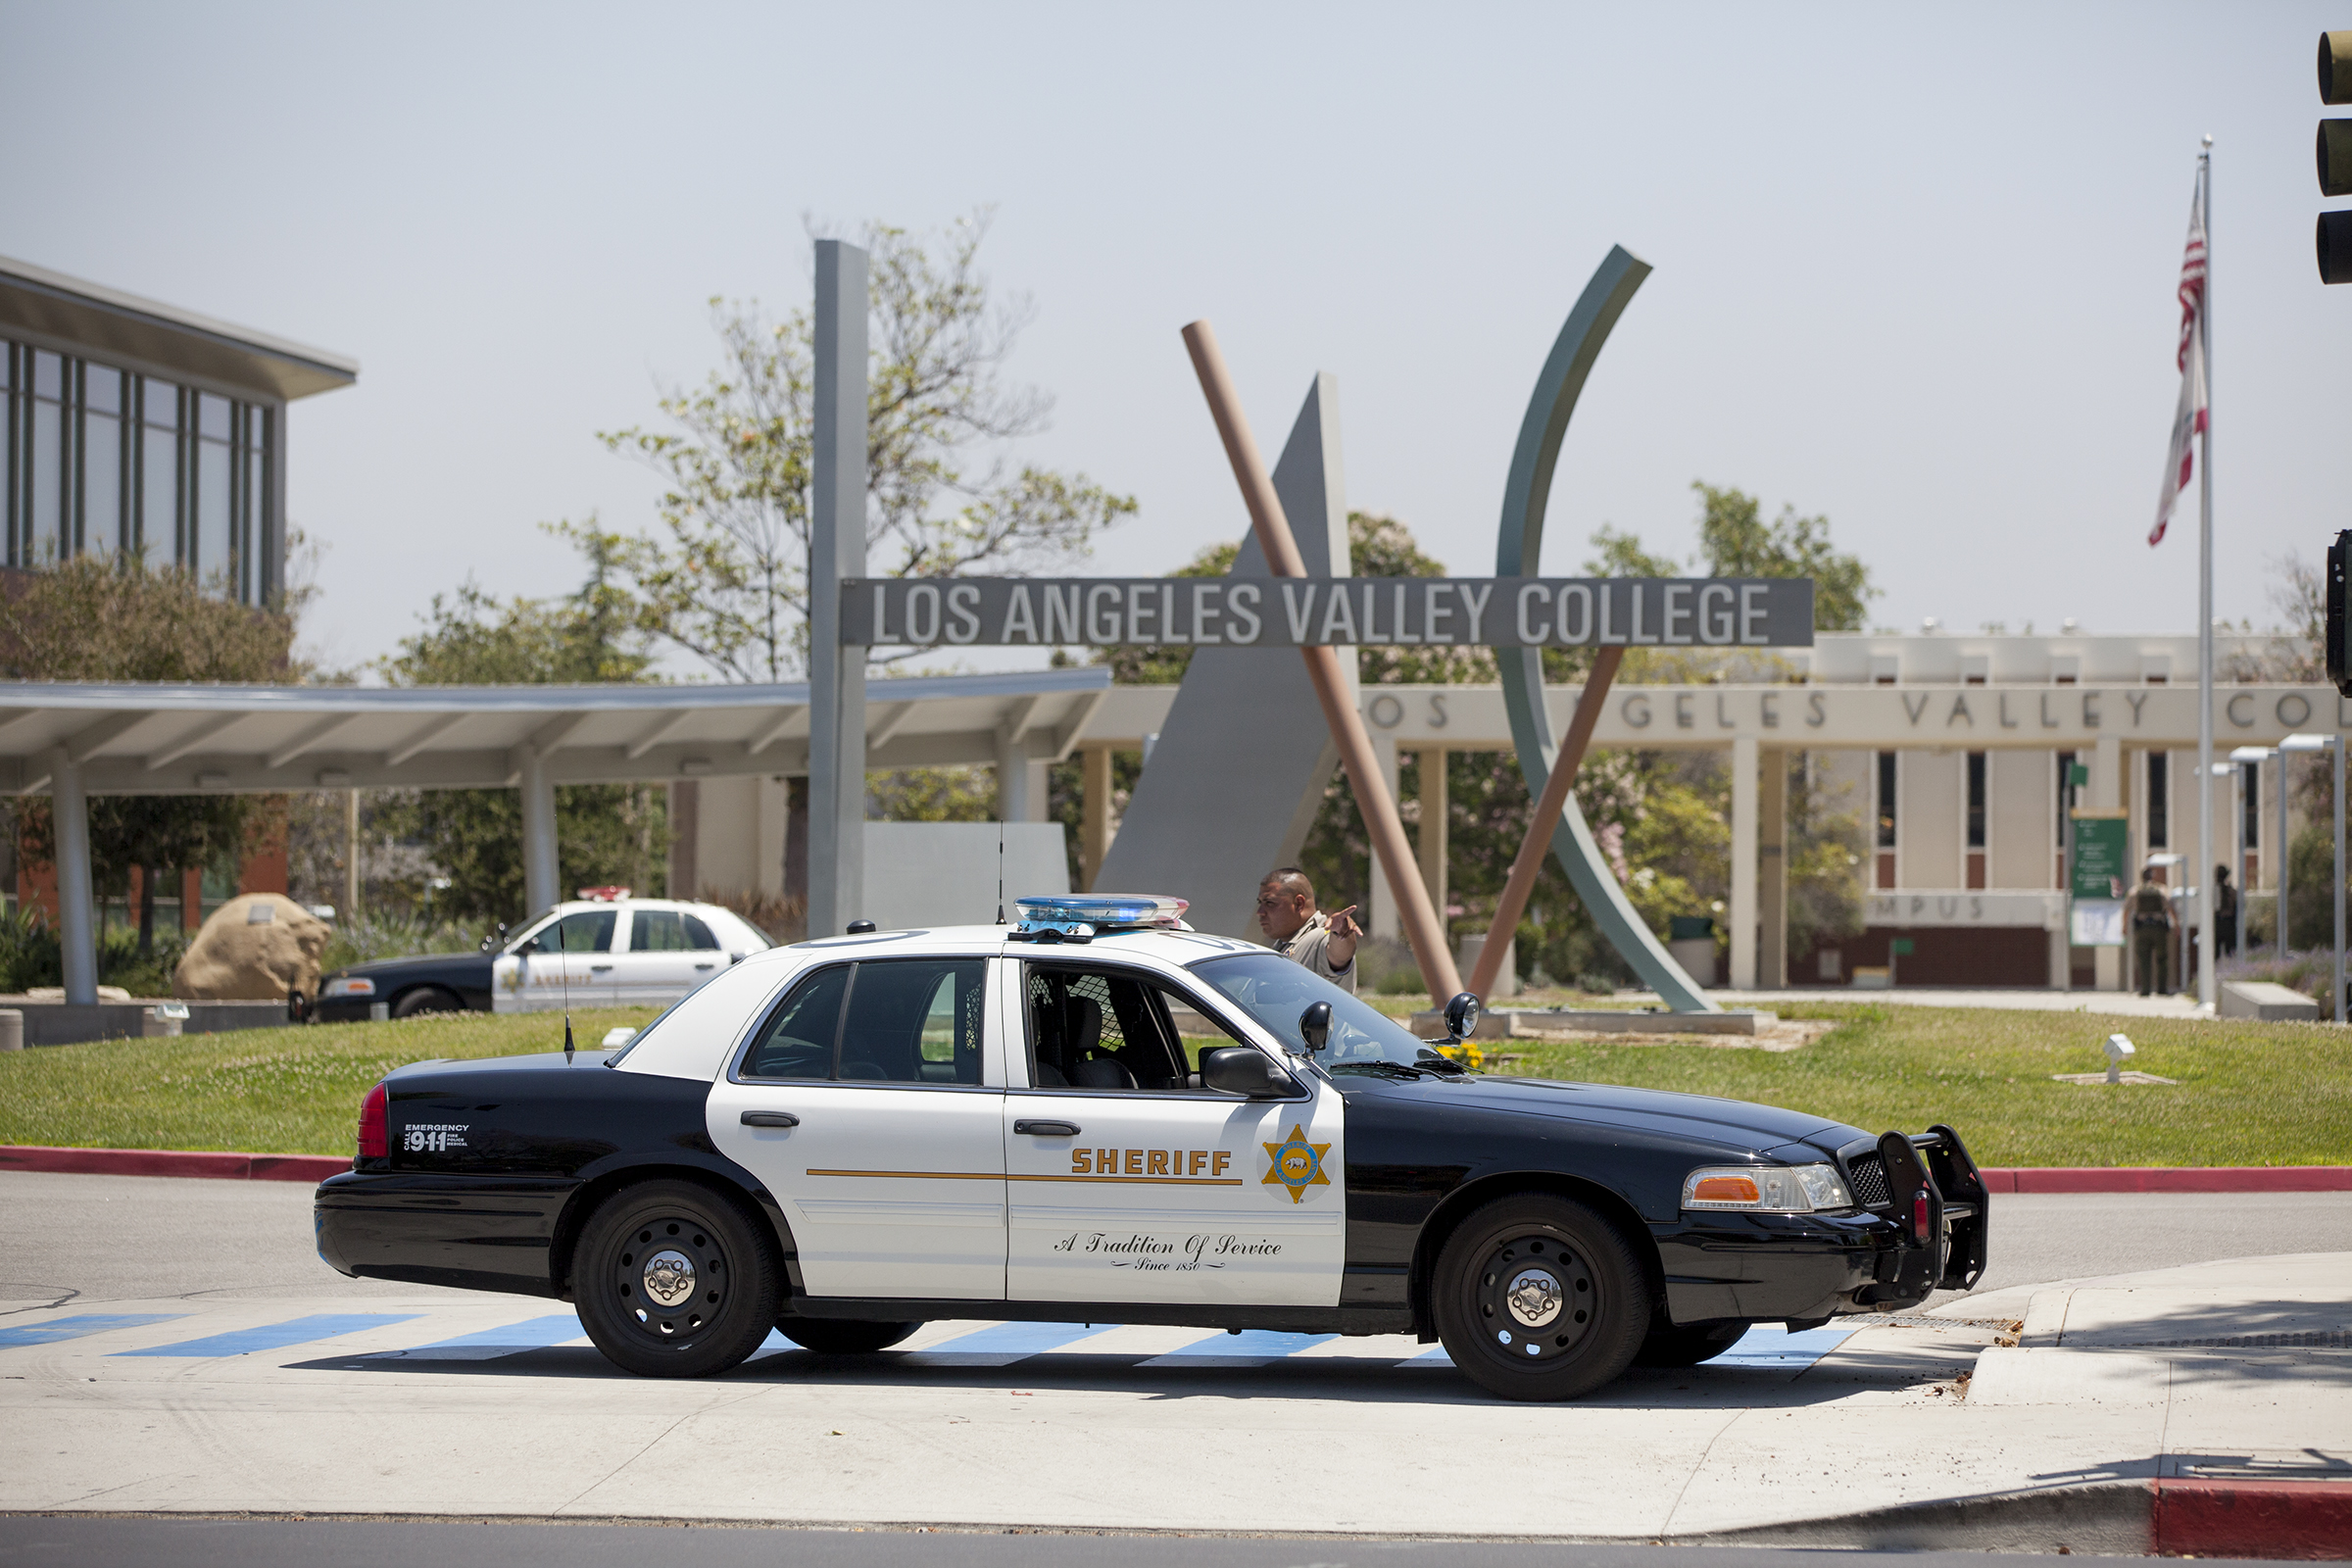 Los Angeles Valley College on lockdown due to possible active shooter